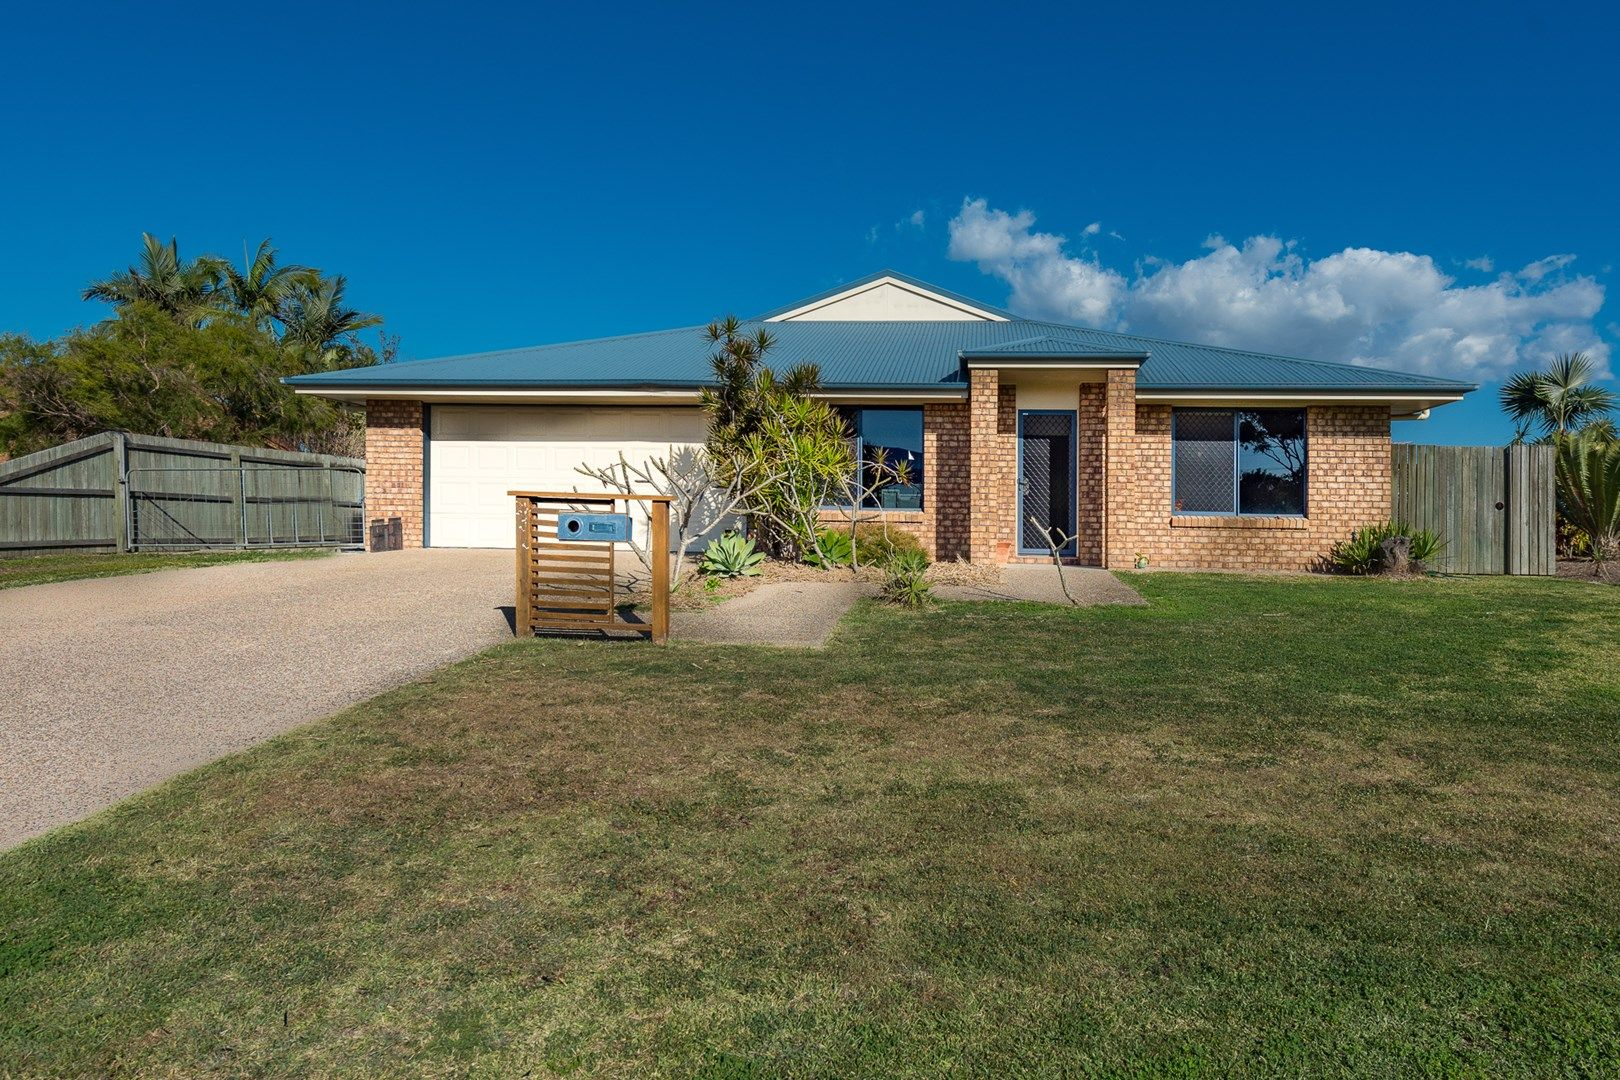 how to get into real estate qld